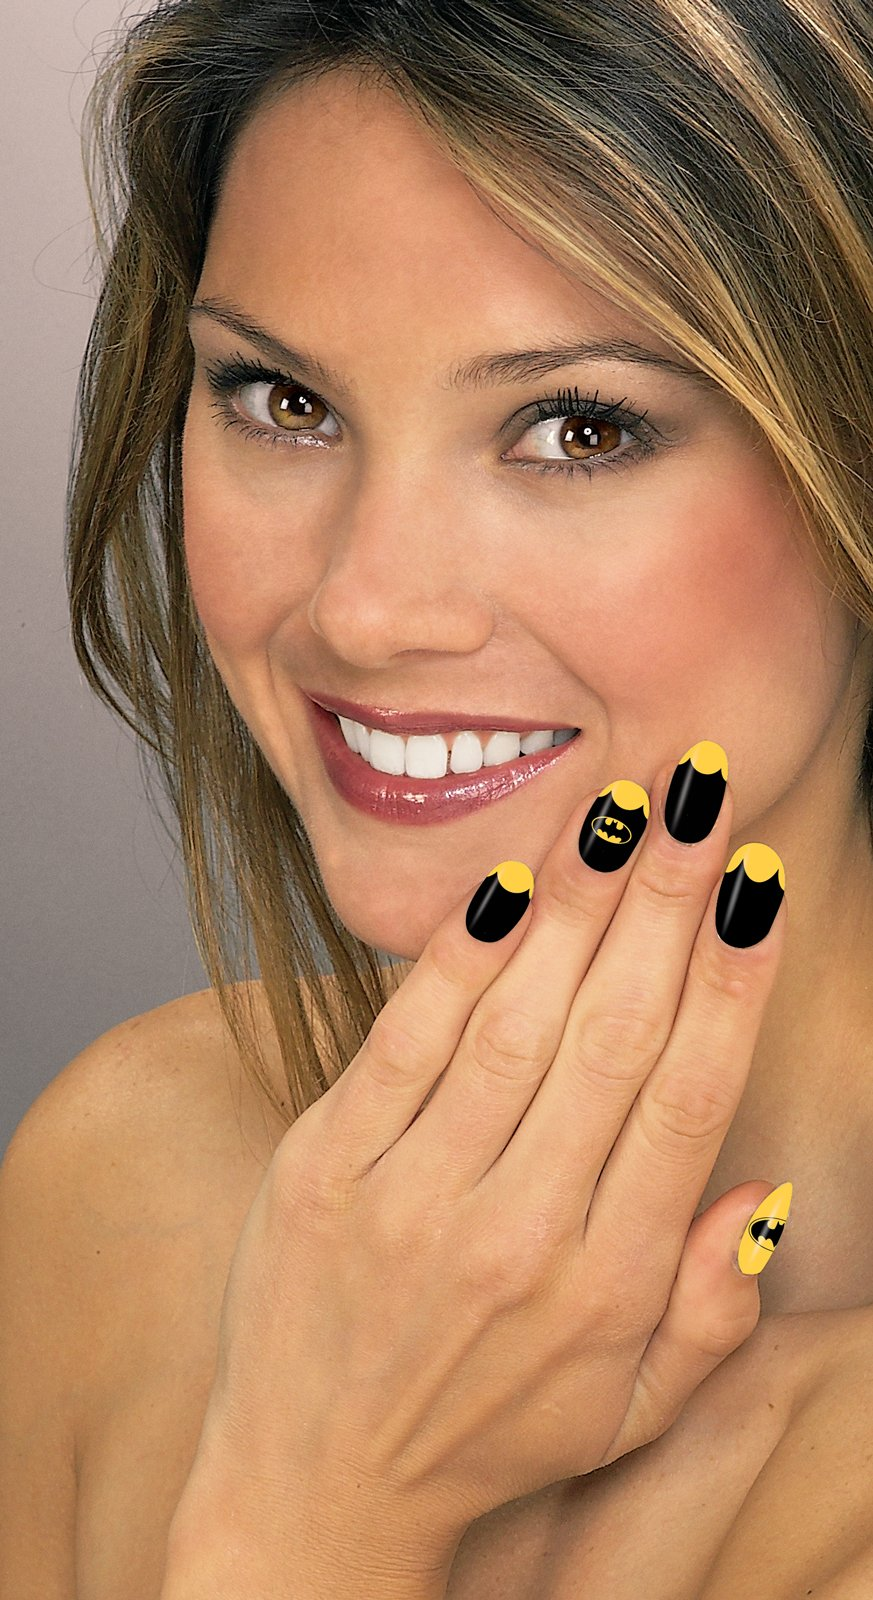 DC Superheroes Batgirl Nail Art Kit